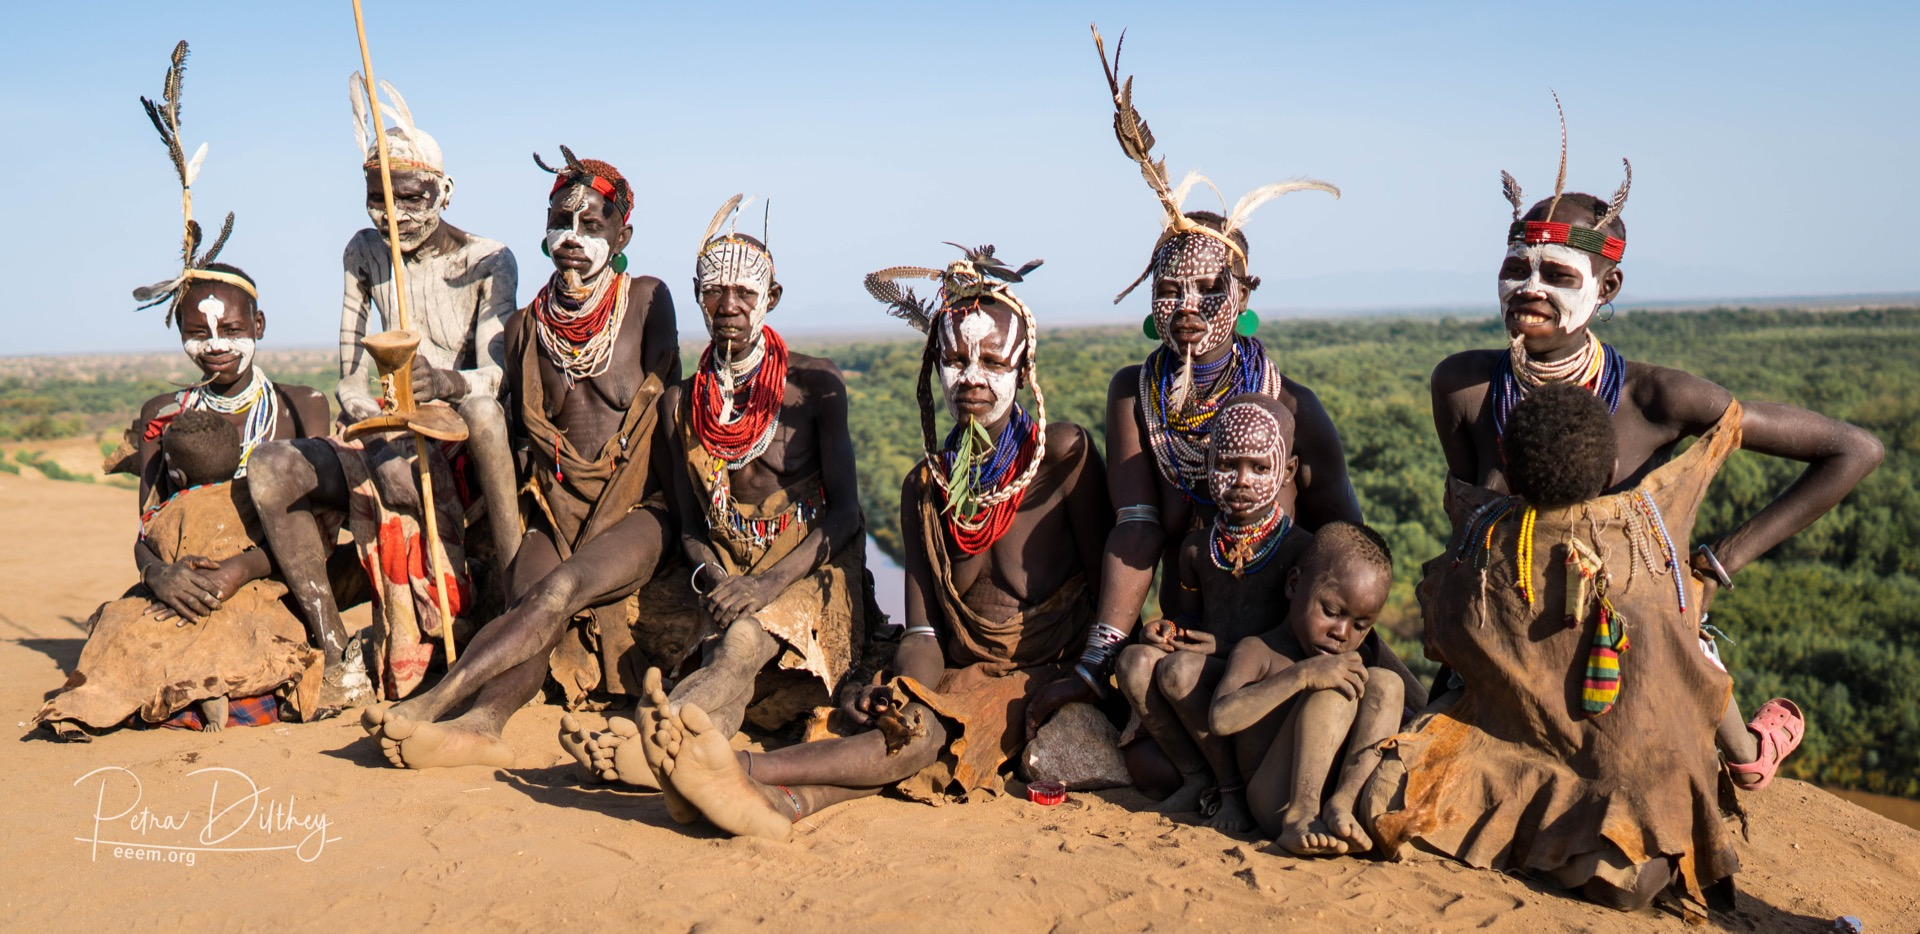 Karo tribe at the Omo river, © Petra Dilthey, ethno e-empowerment (eeem.org).